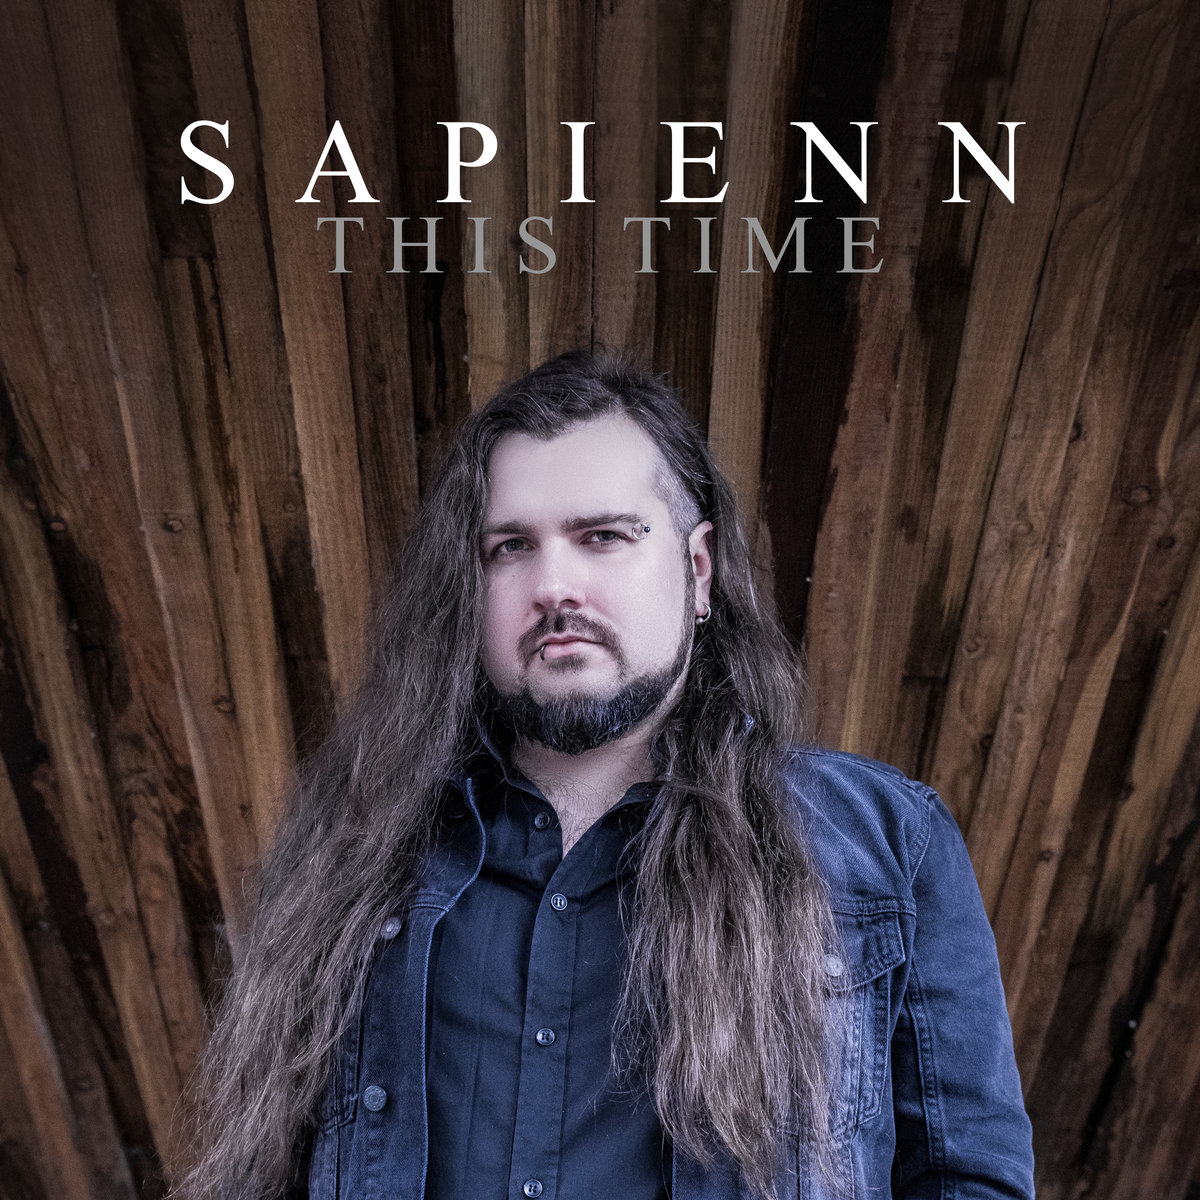 Sapienn 'This Time' single Artwork